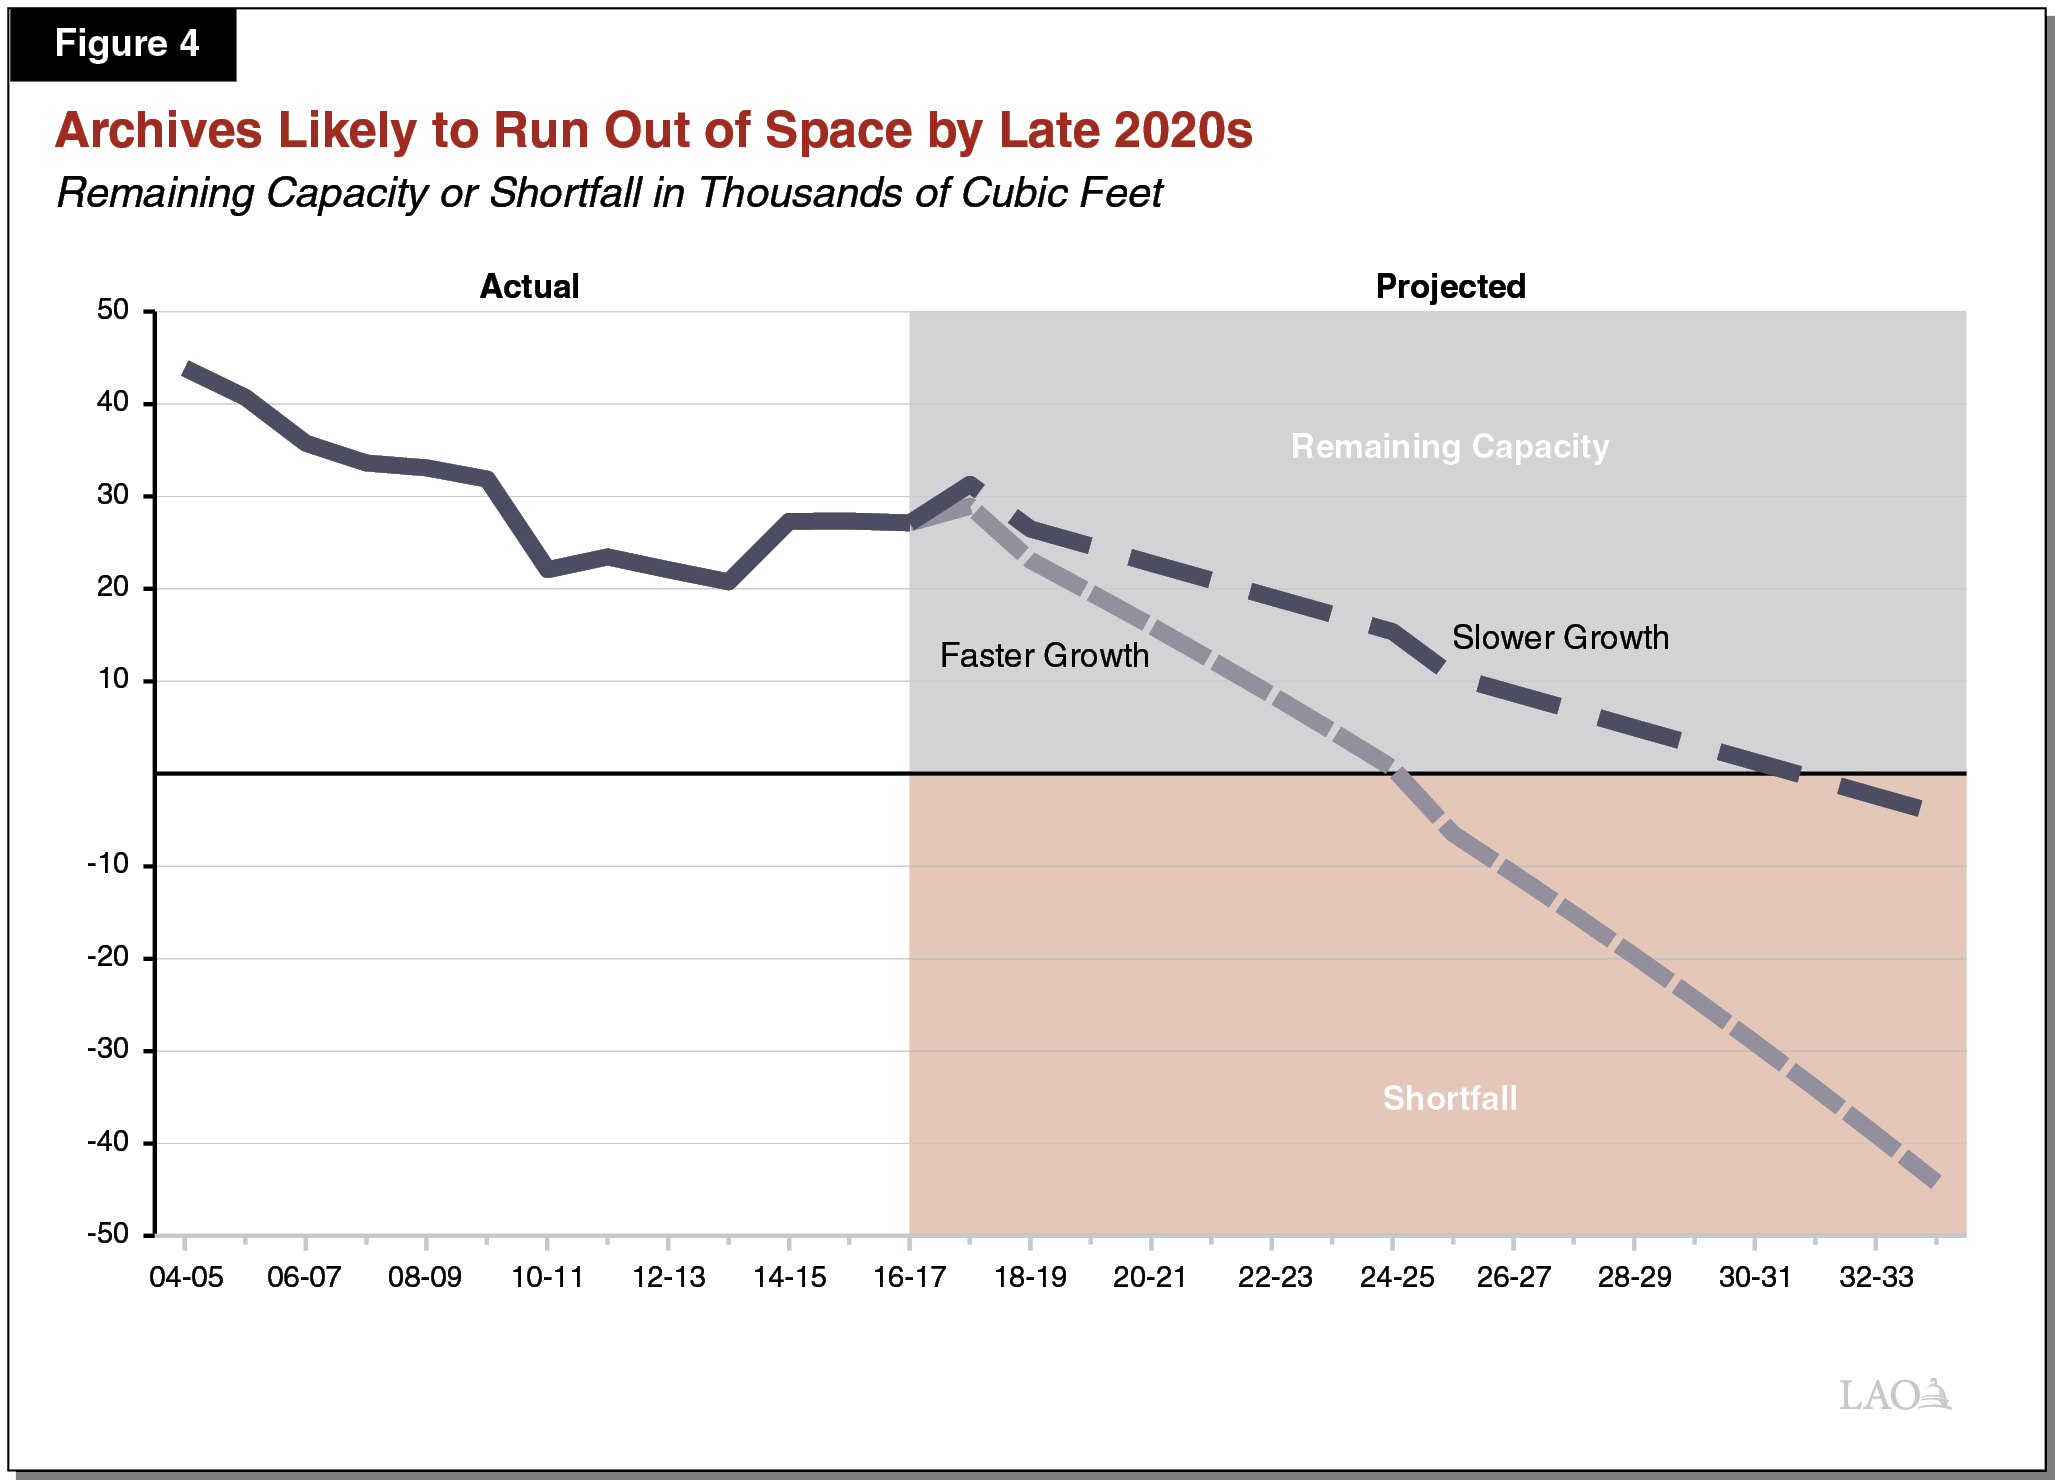 Figure 4 - Archives Likely to Run Out of Space By Late 2020s